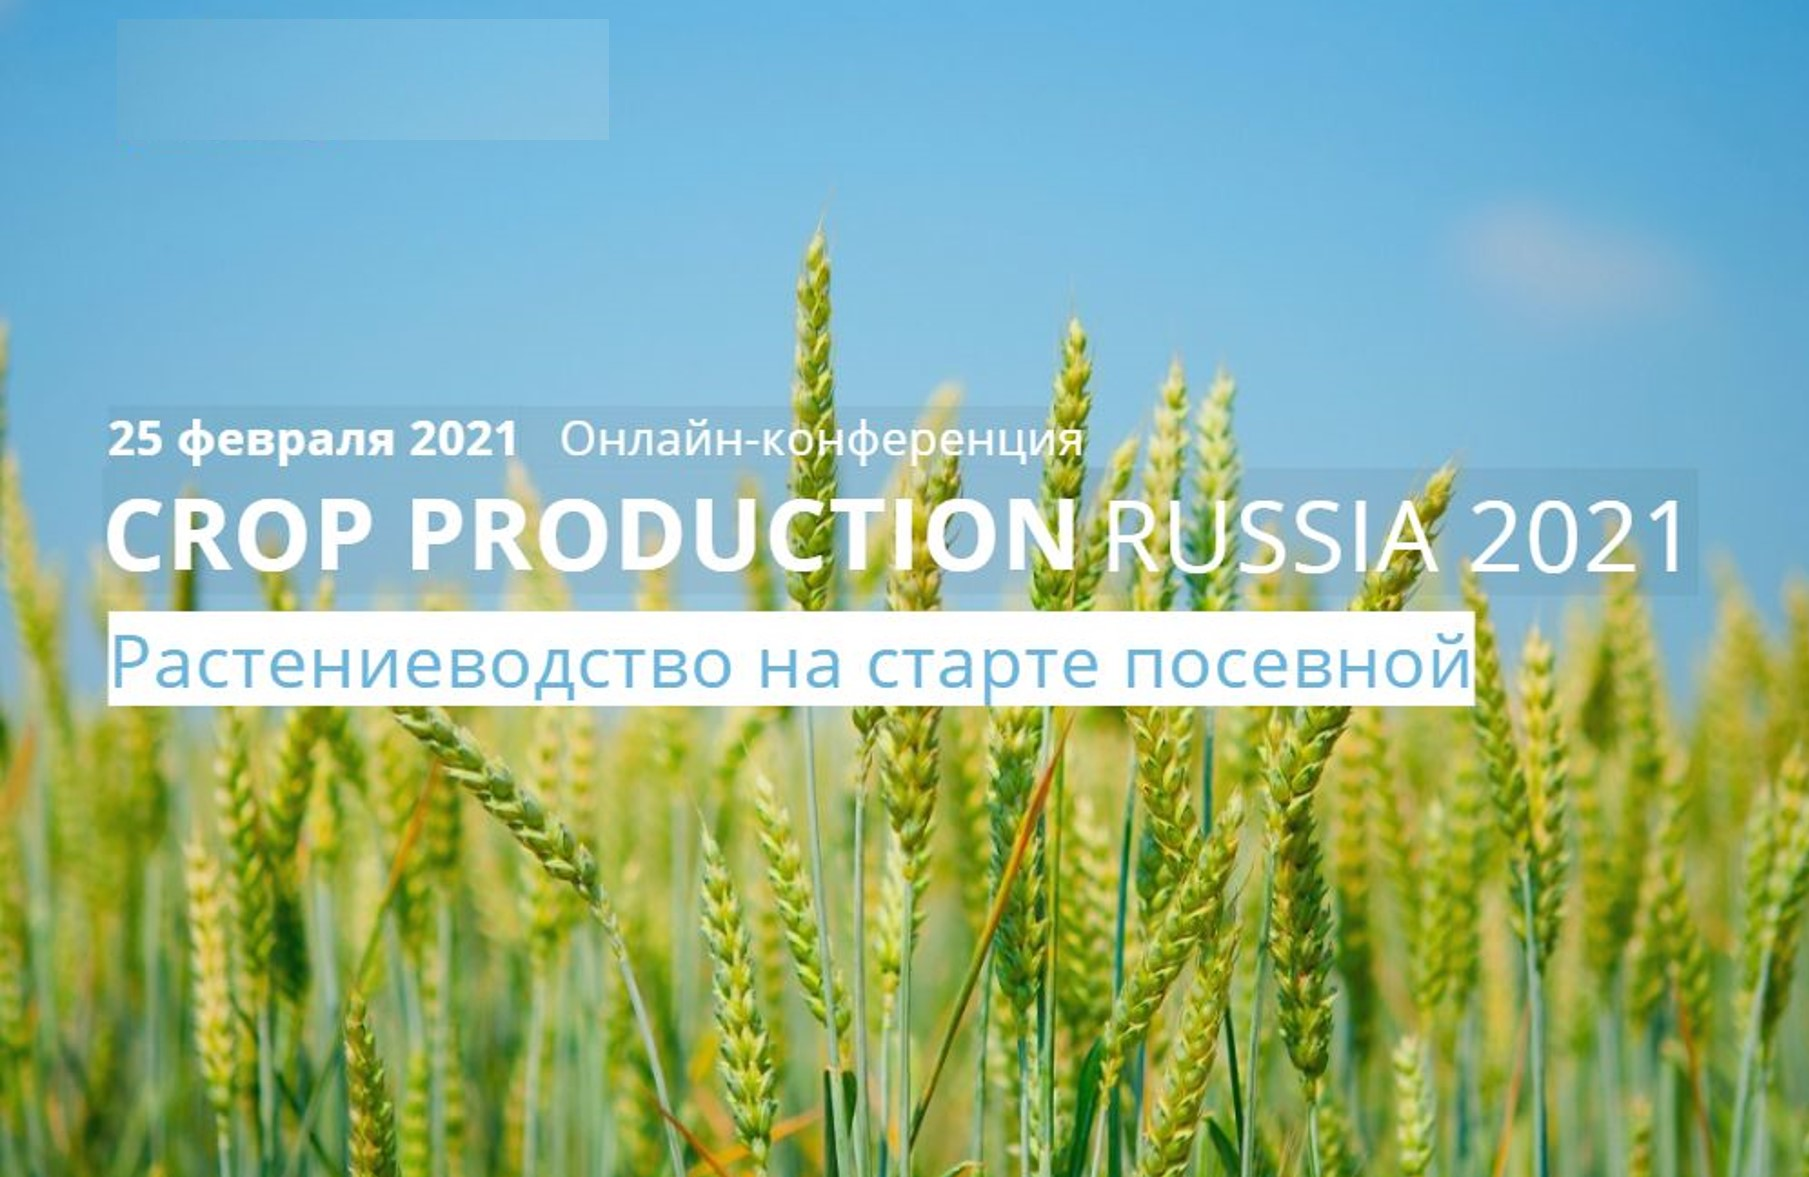 CROP PRODUCTION RUSSIA 2021: «Растениеводство на старте посевной»